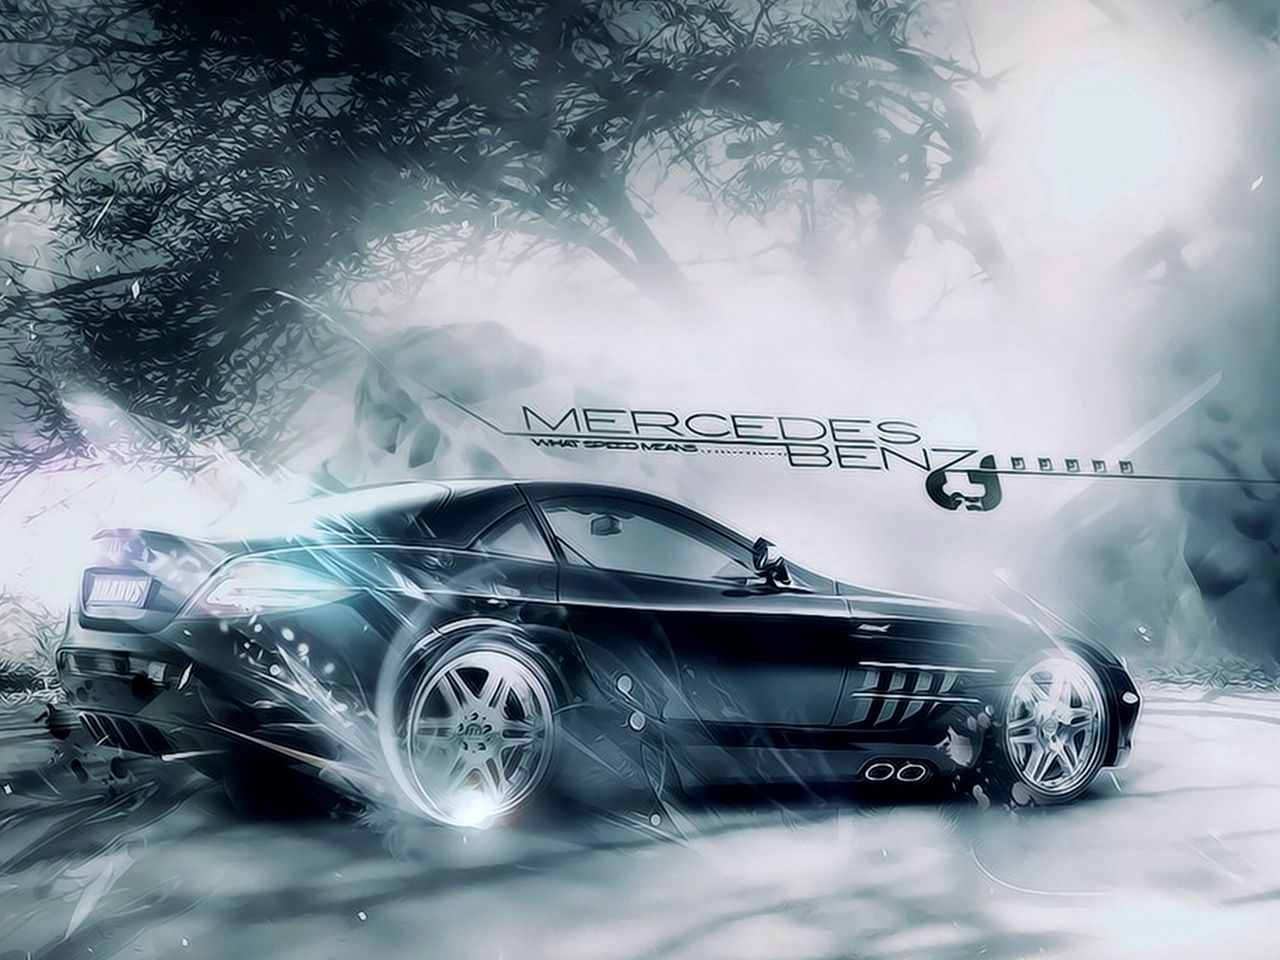 benz black hd wallpaper download black painted cars wallpapers 1280x960